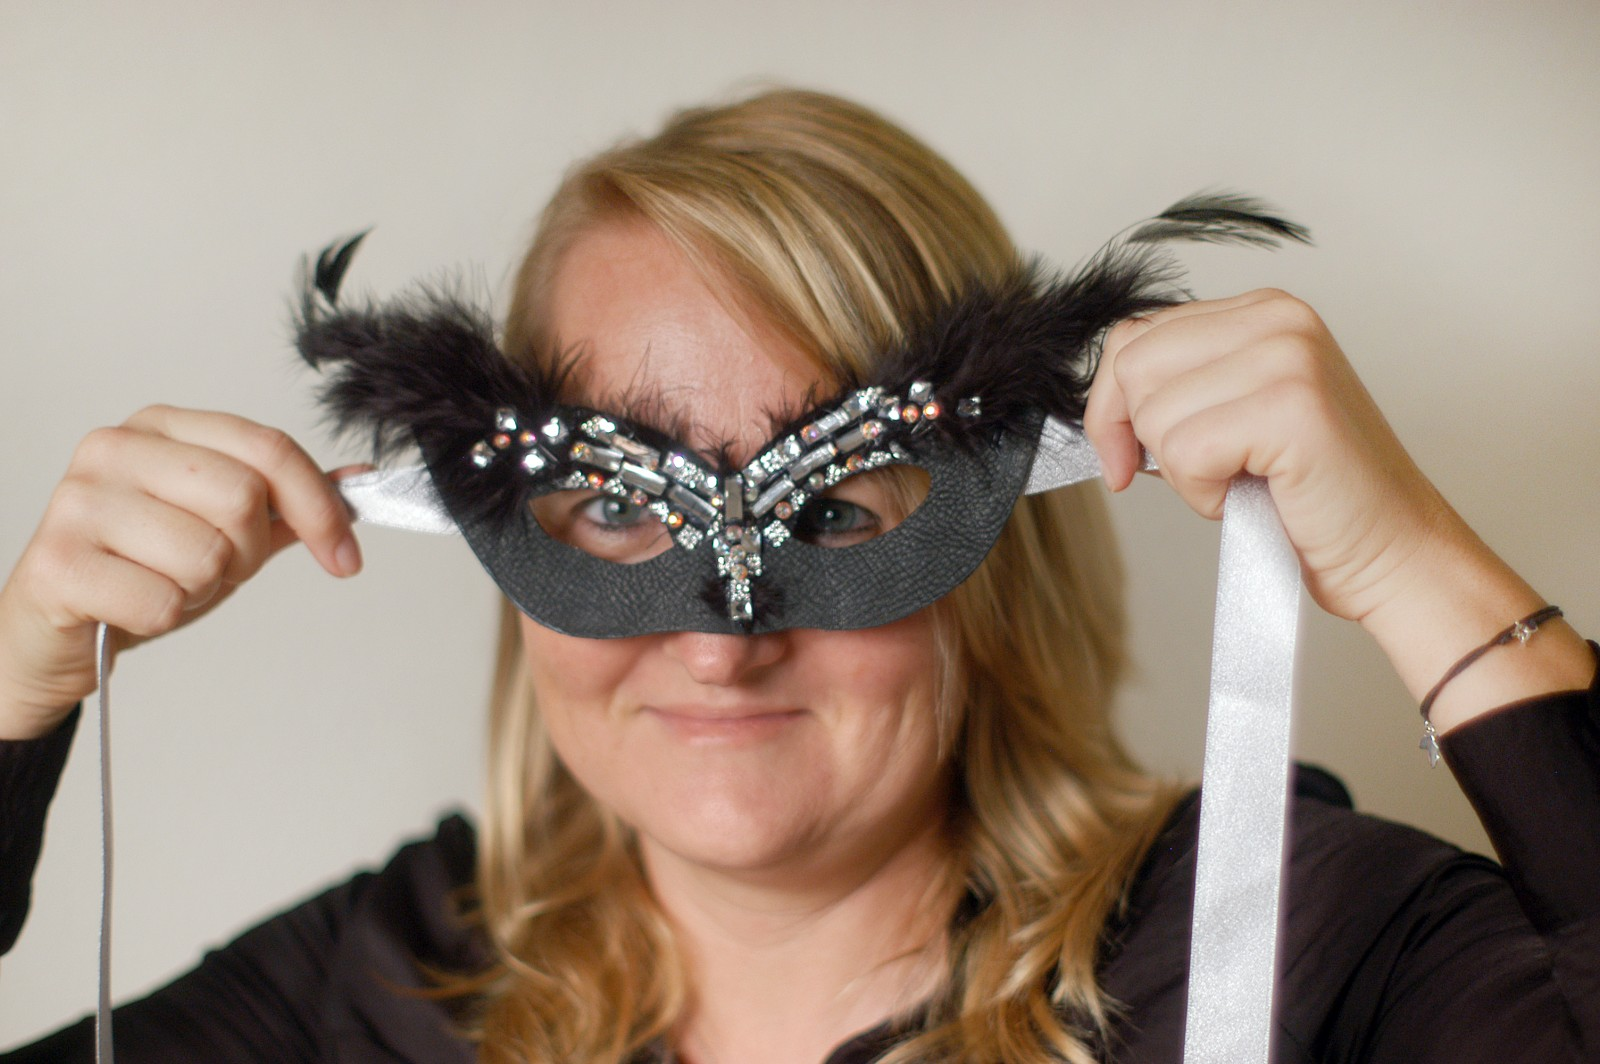 Stew Caroline von Broembsen creates handcrafted masks for masquerade balls and other events as a side career. PHOTO/SUZETTE COOK